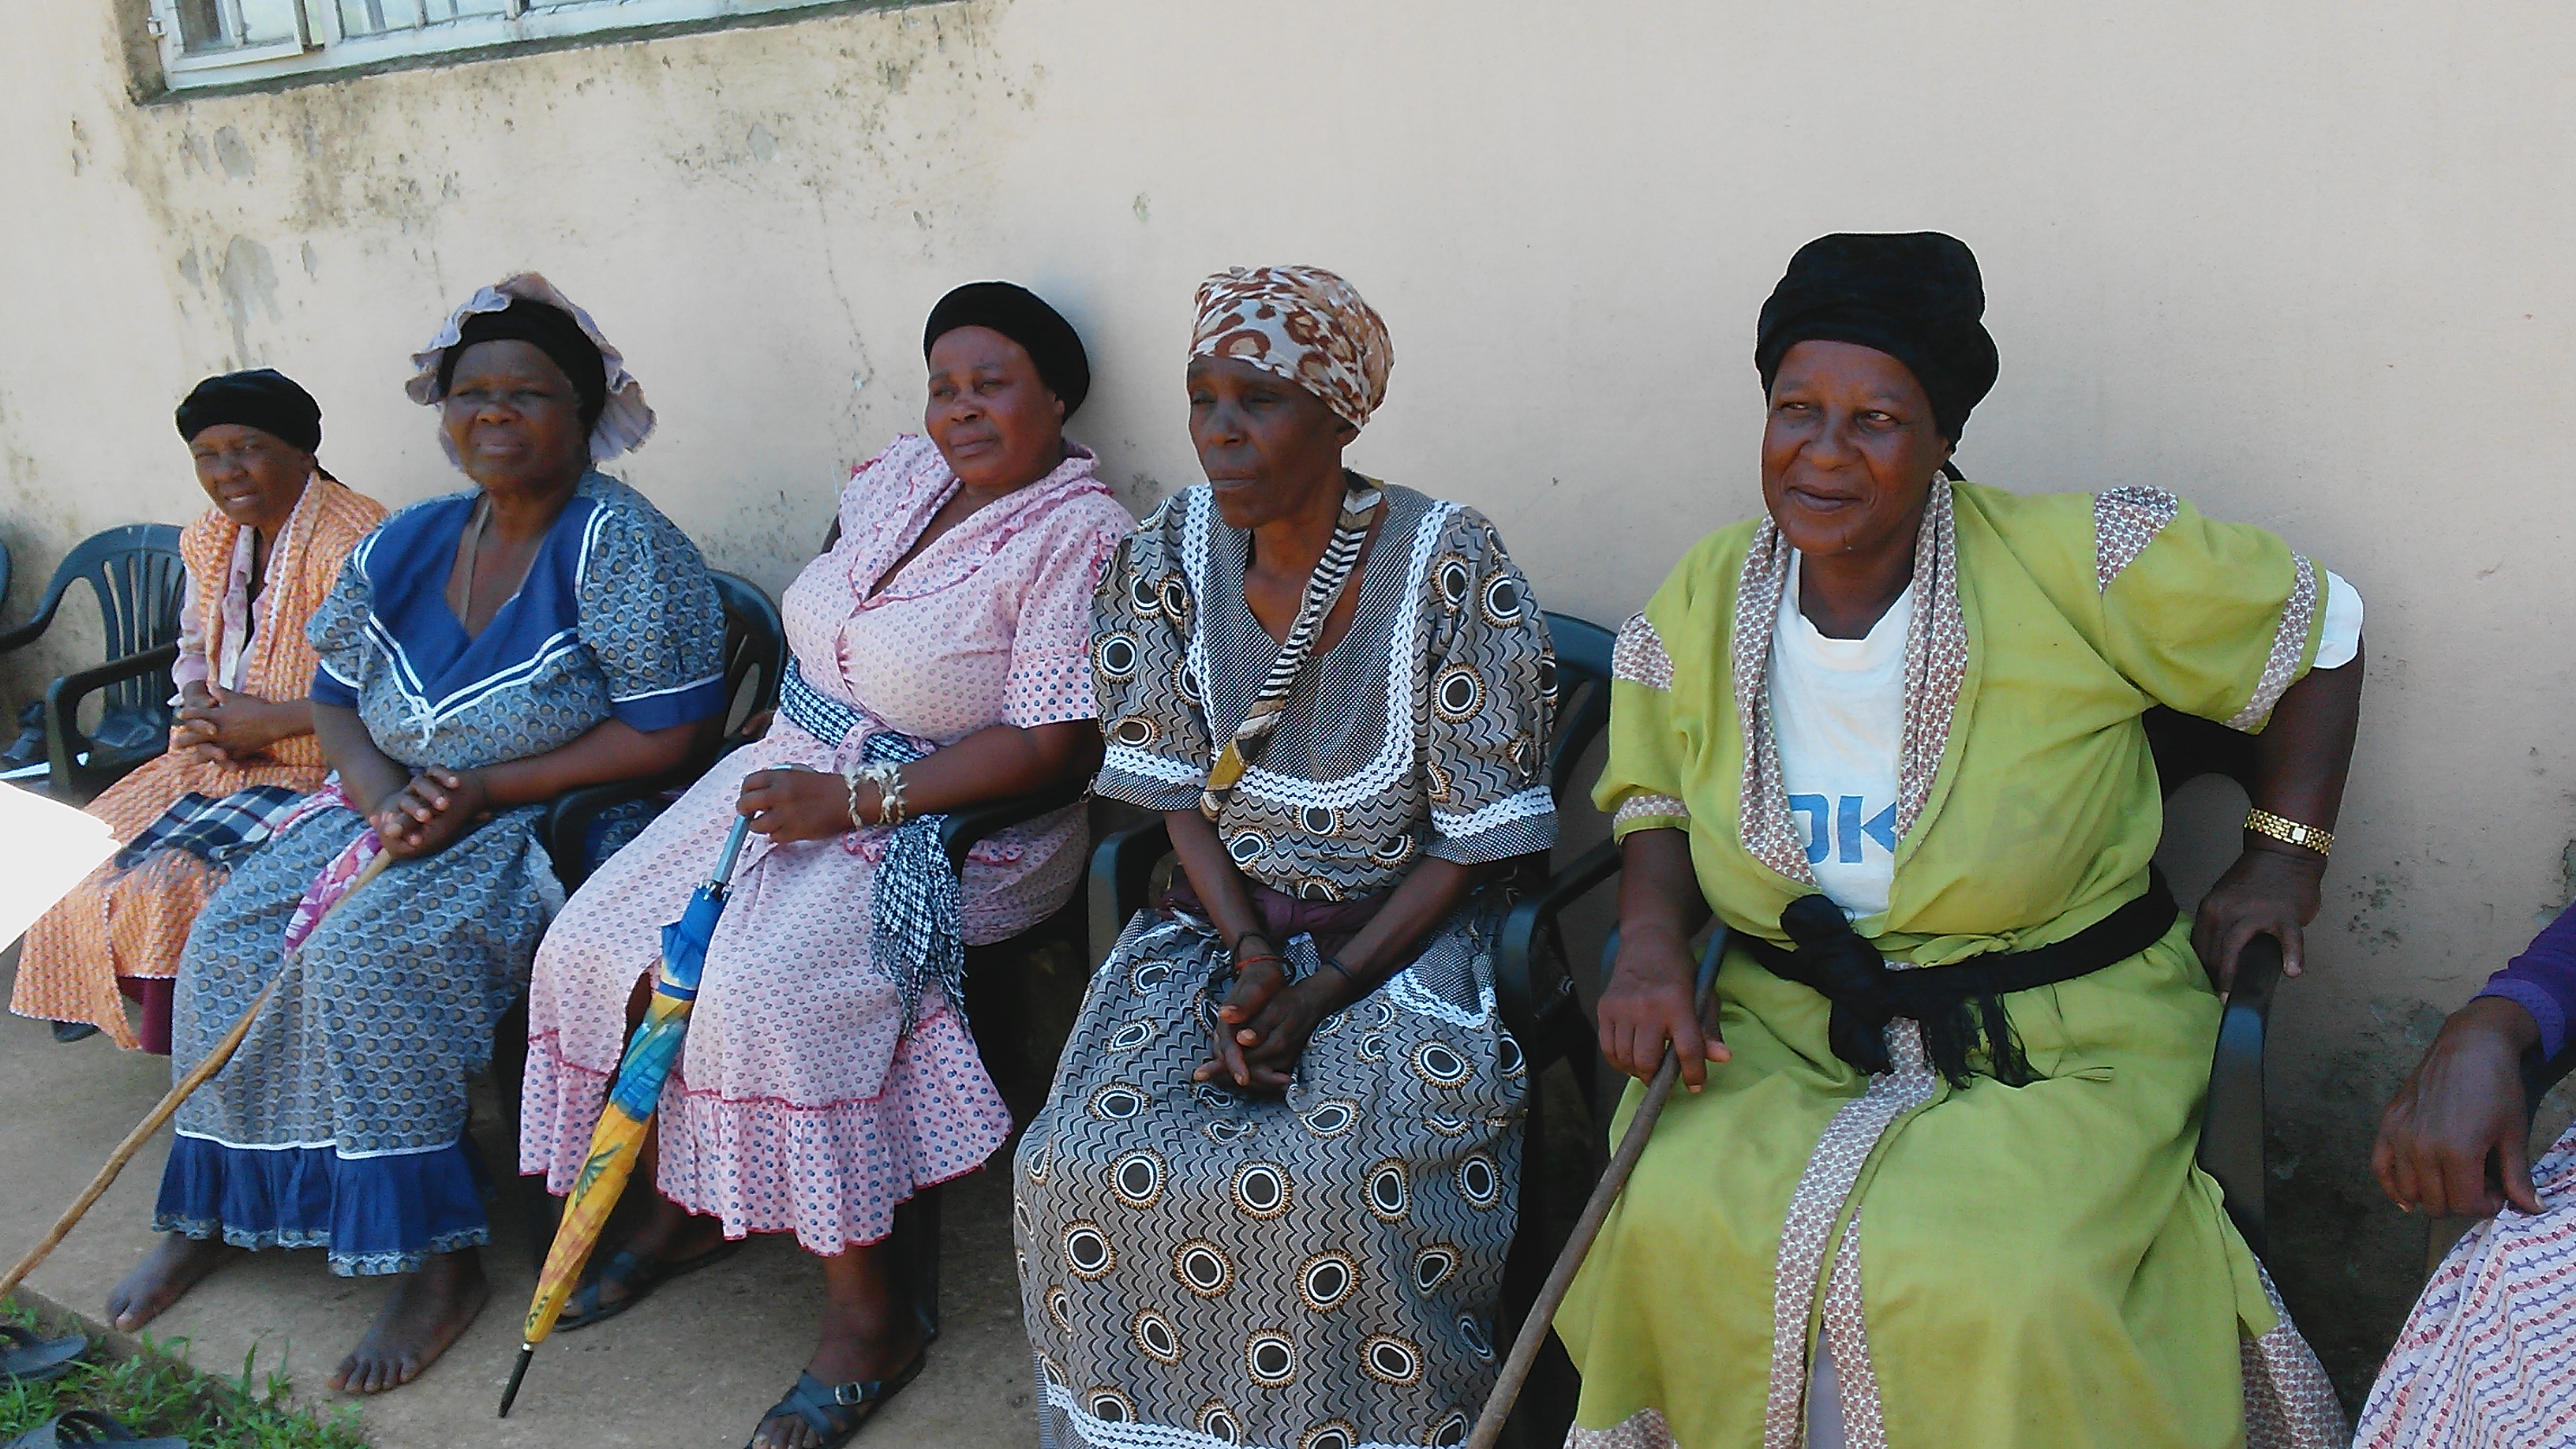 Older women sitting at rural community centre with walking sticks and umbrellas